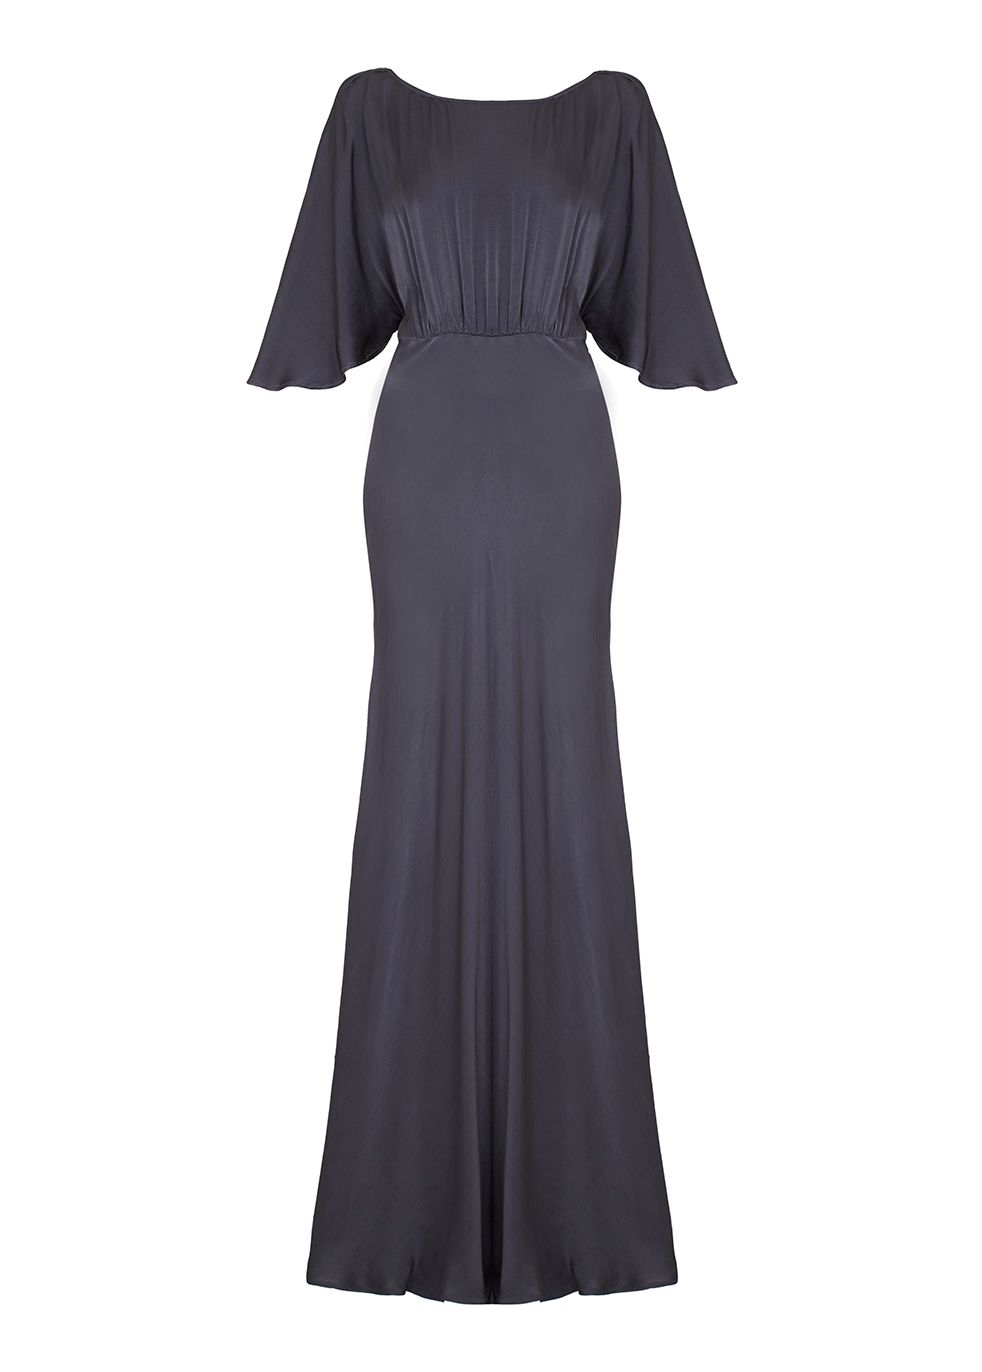 1940s Style Prom, Party, Cocktail Dresses Ghost Gaby Dress Charcoal £295.00 AT vintagedancer.com